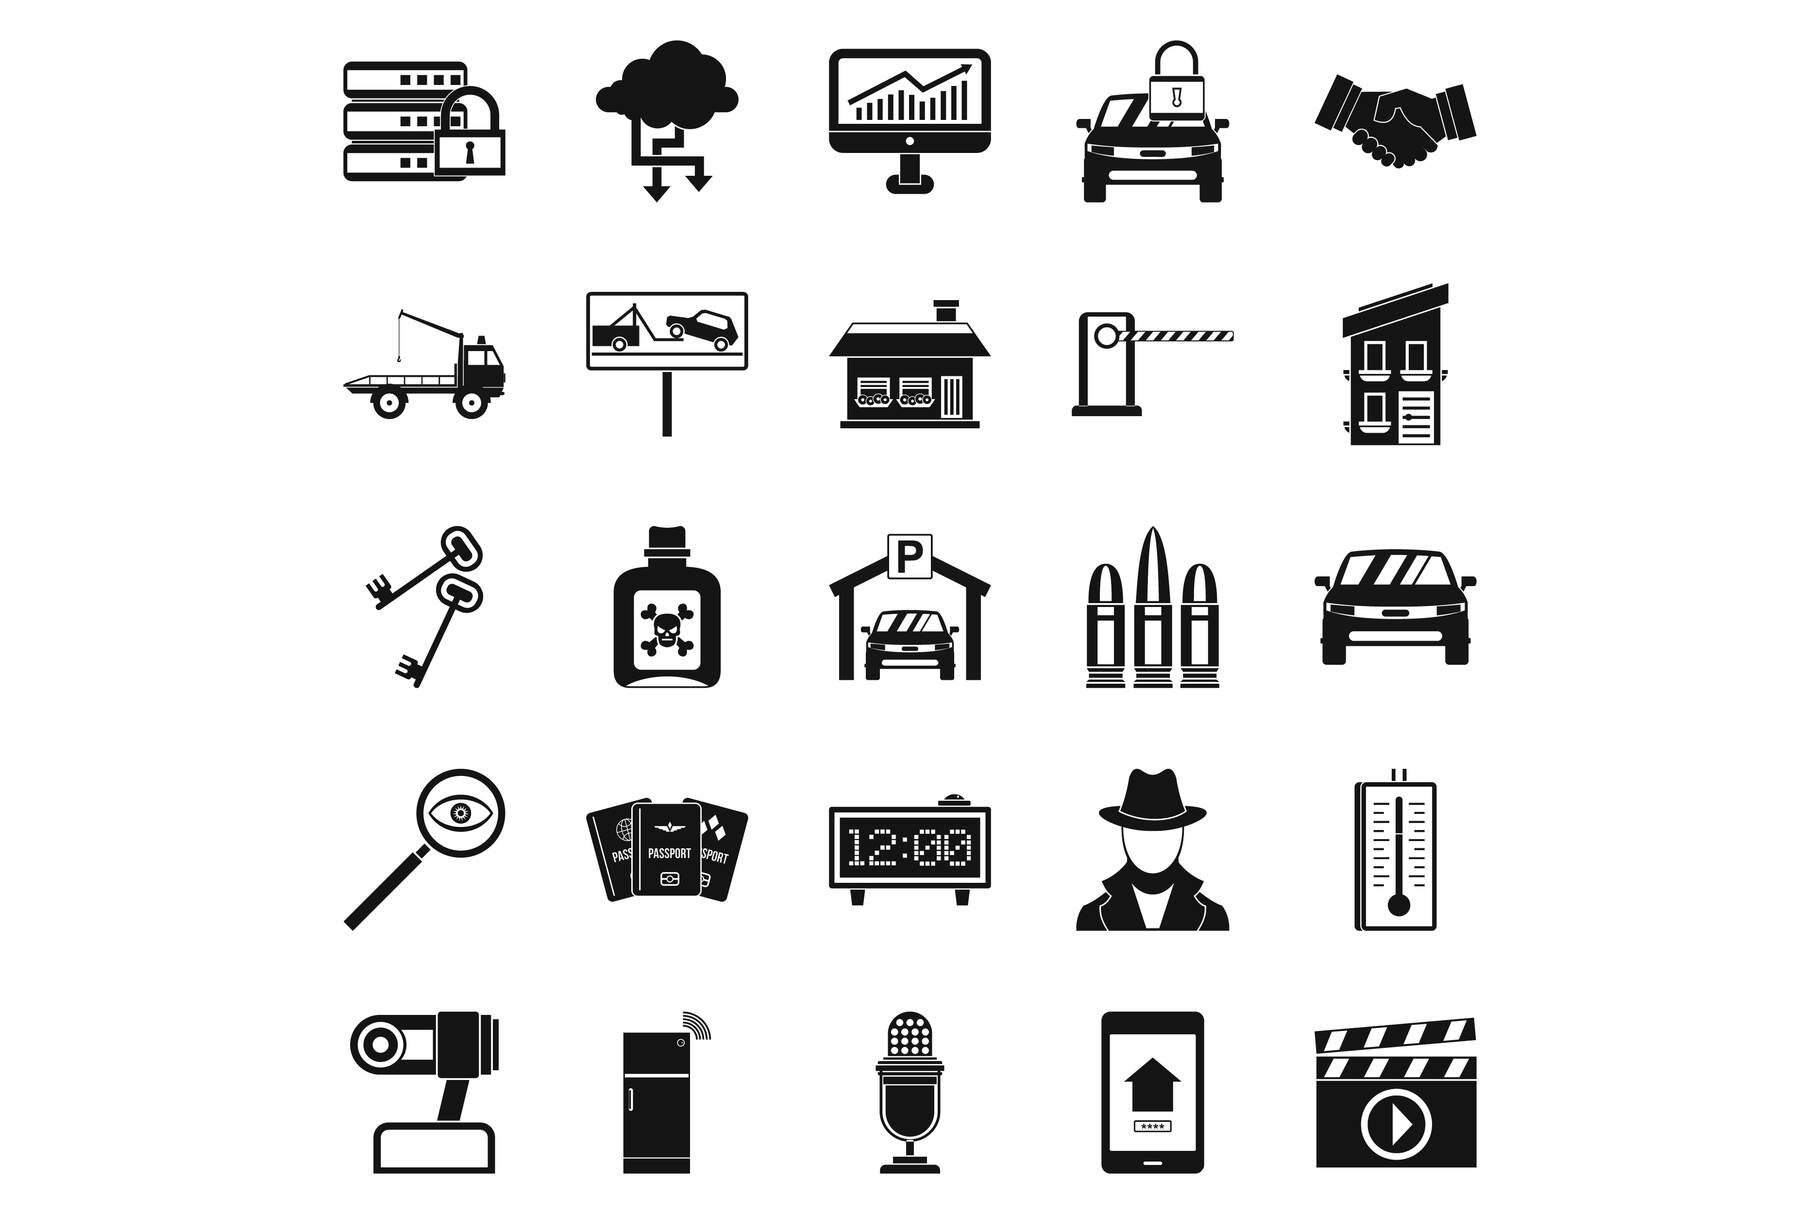 Car recorder icons set, simple style example image 1